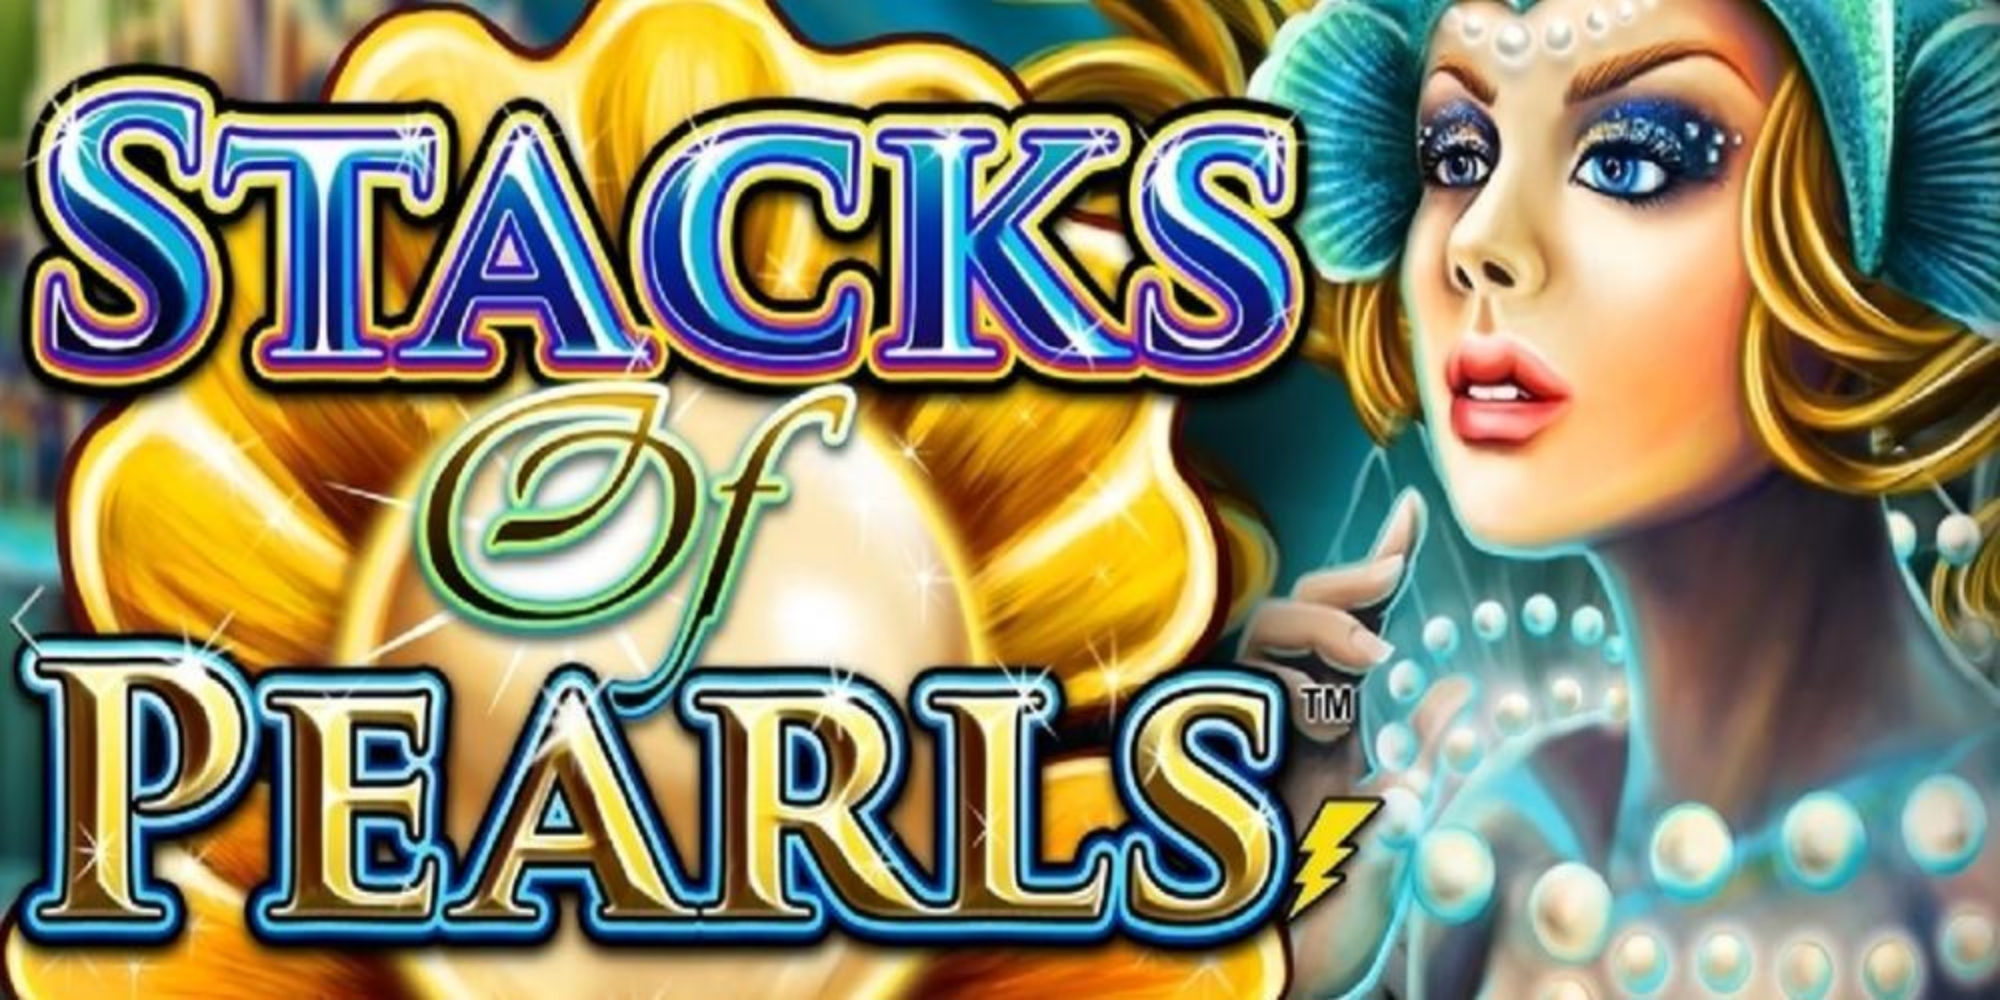 The Stacks of Pearls Online Slot Demo Game by Lightning Box